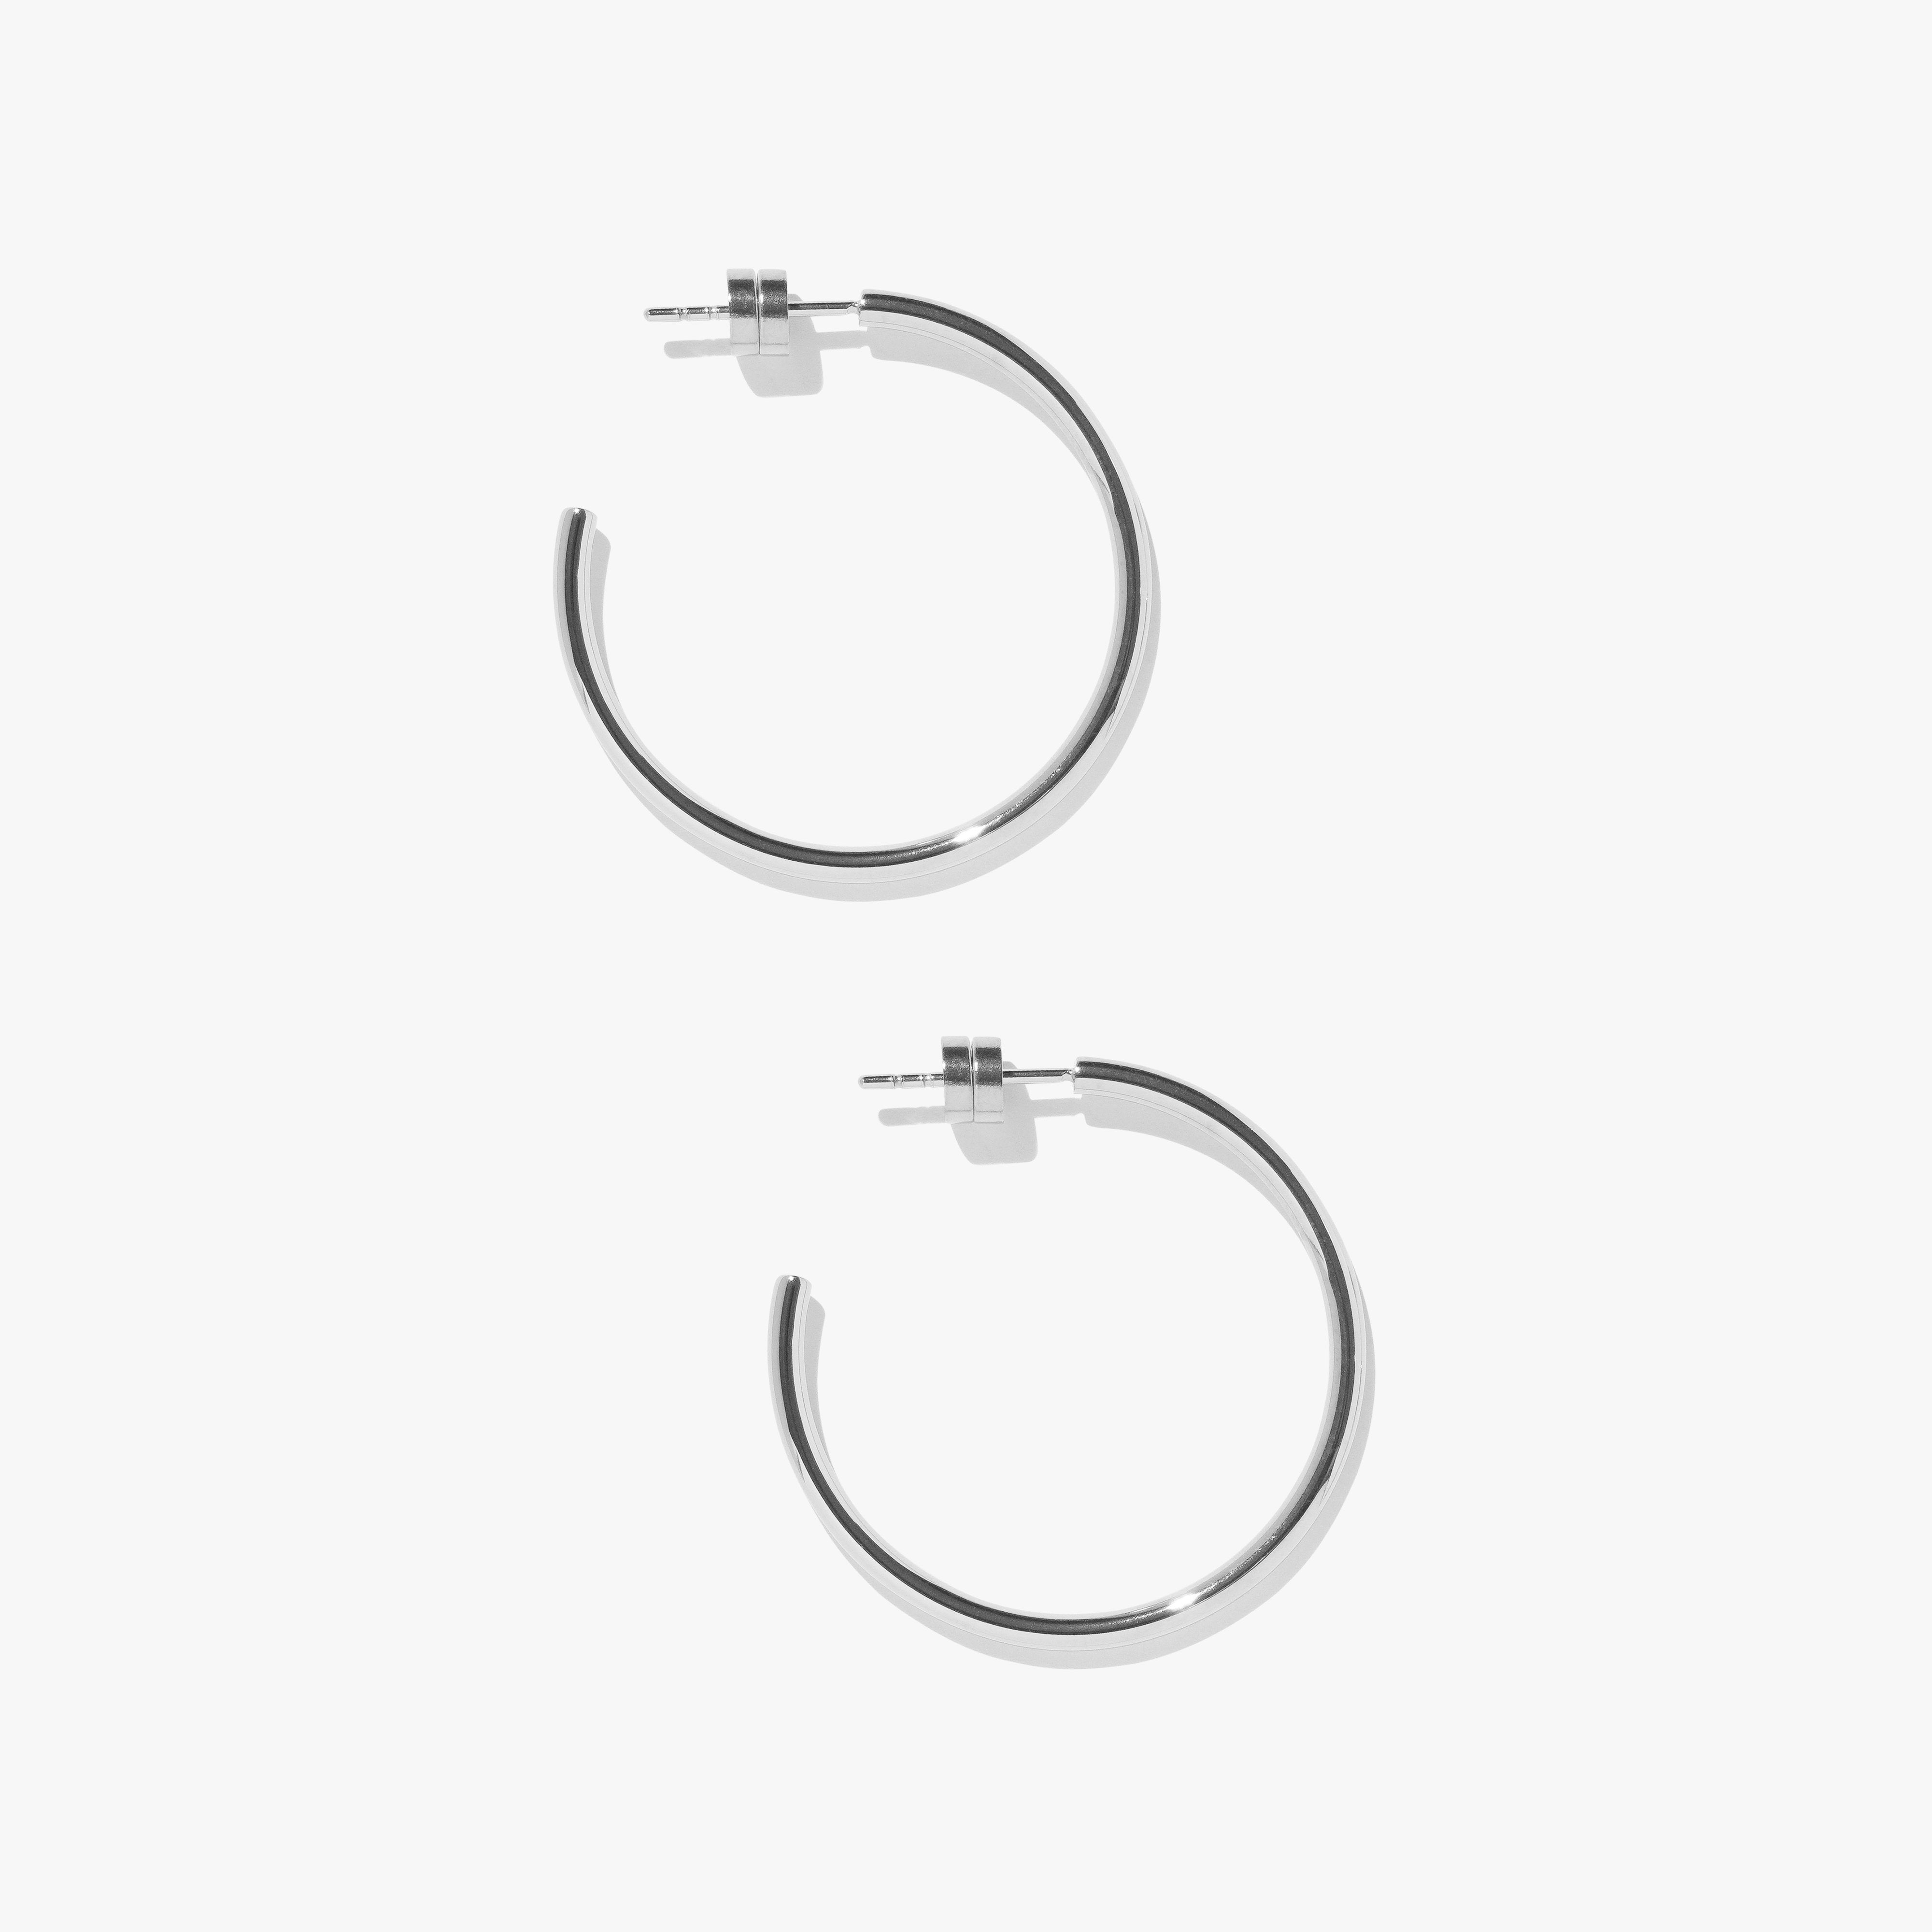 Earrings - Timetravel Skinny Hoops - M - Silver